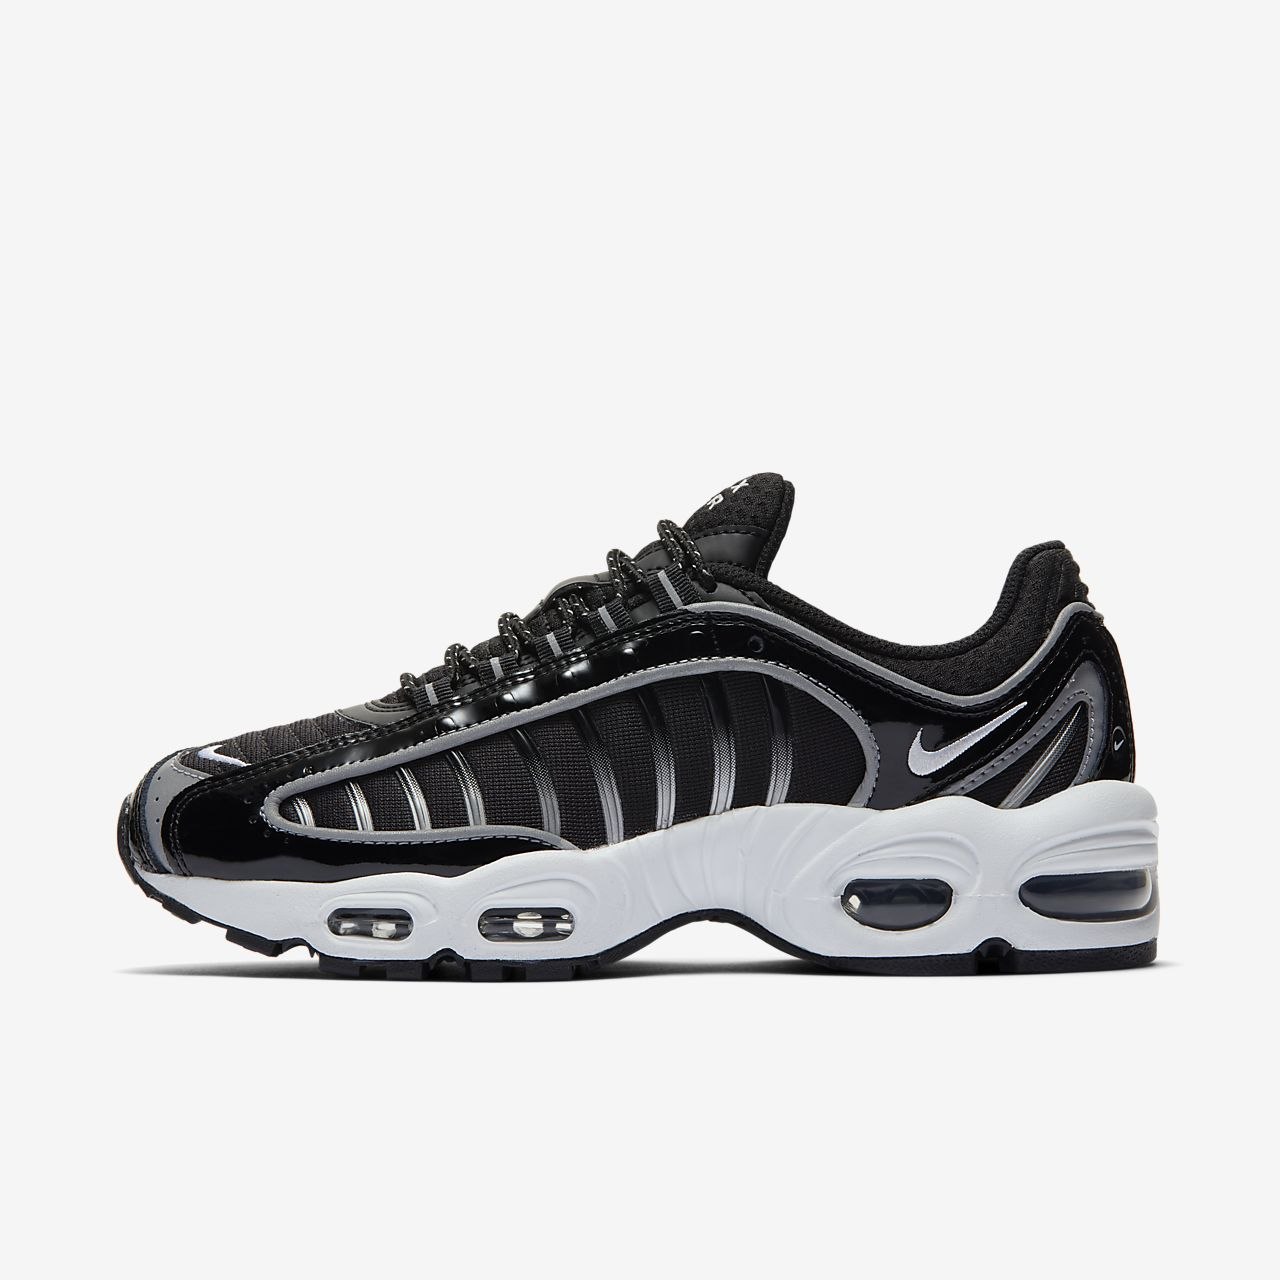 limited guantity timeless design look out for Chaussure Nike Air Max Tailwind IV pour Femme